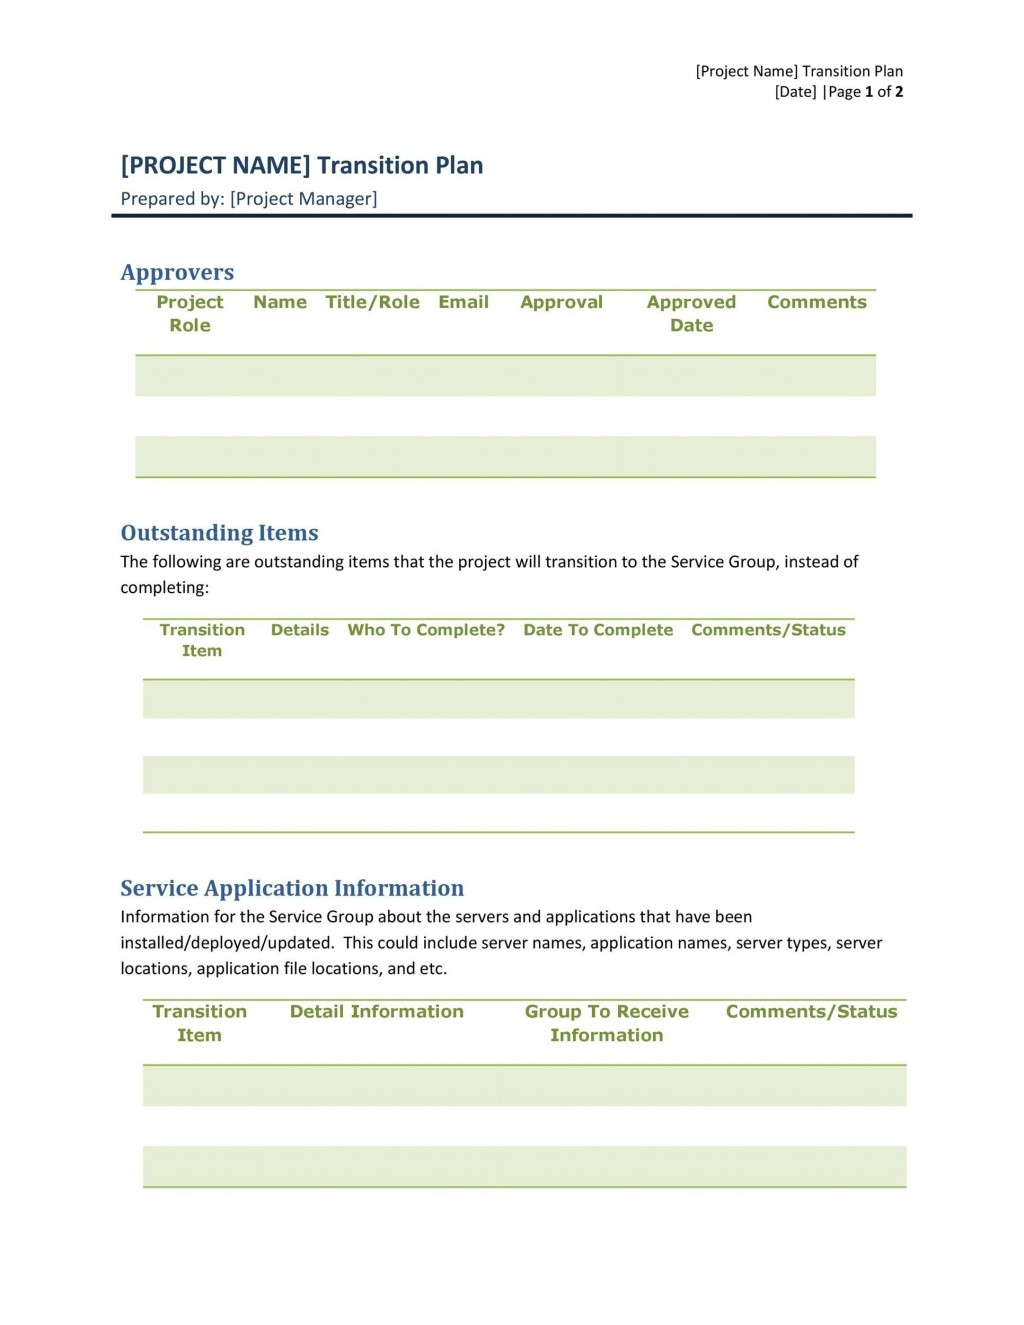 002 Phenomenal Project Transition Out Plan Template Image  Xl Excel DownloadLarge